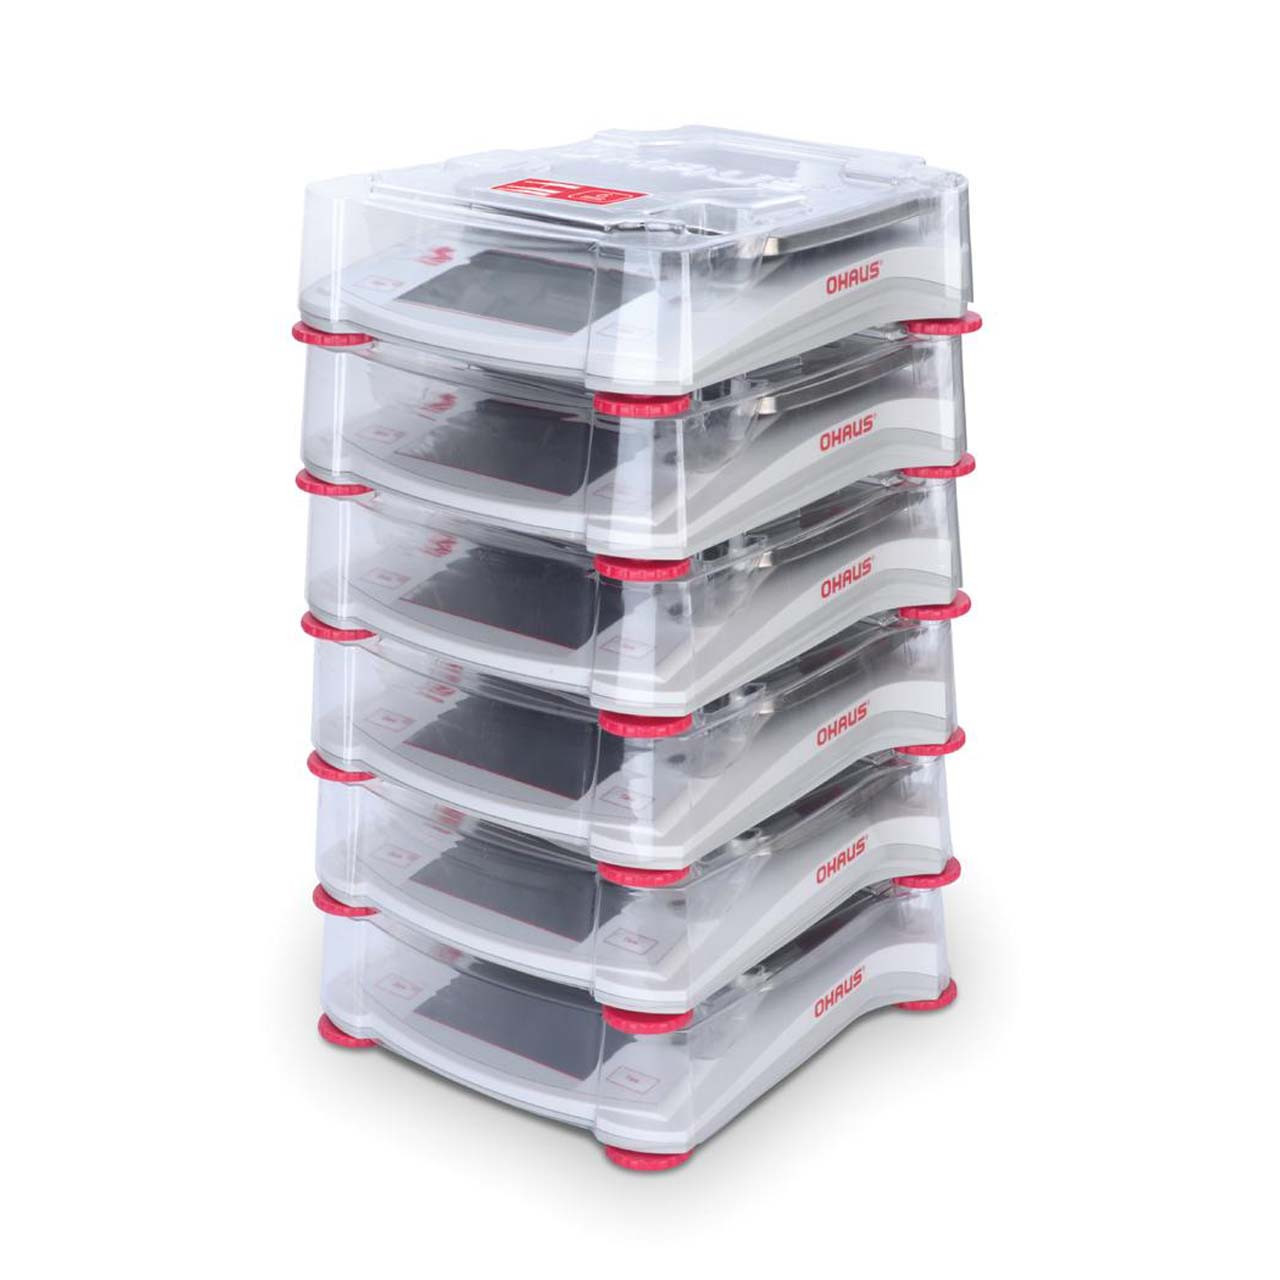 Stacking and storage cover for either Scout SKX or STX models.